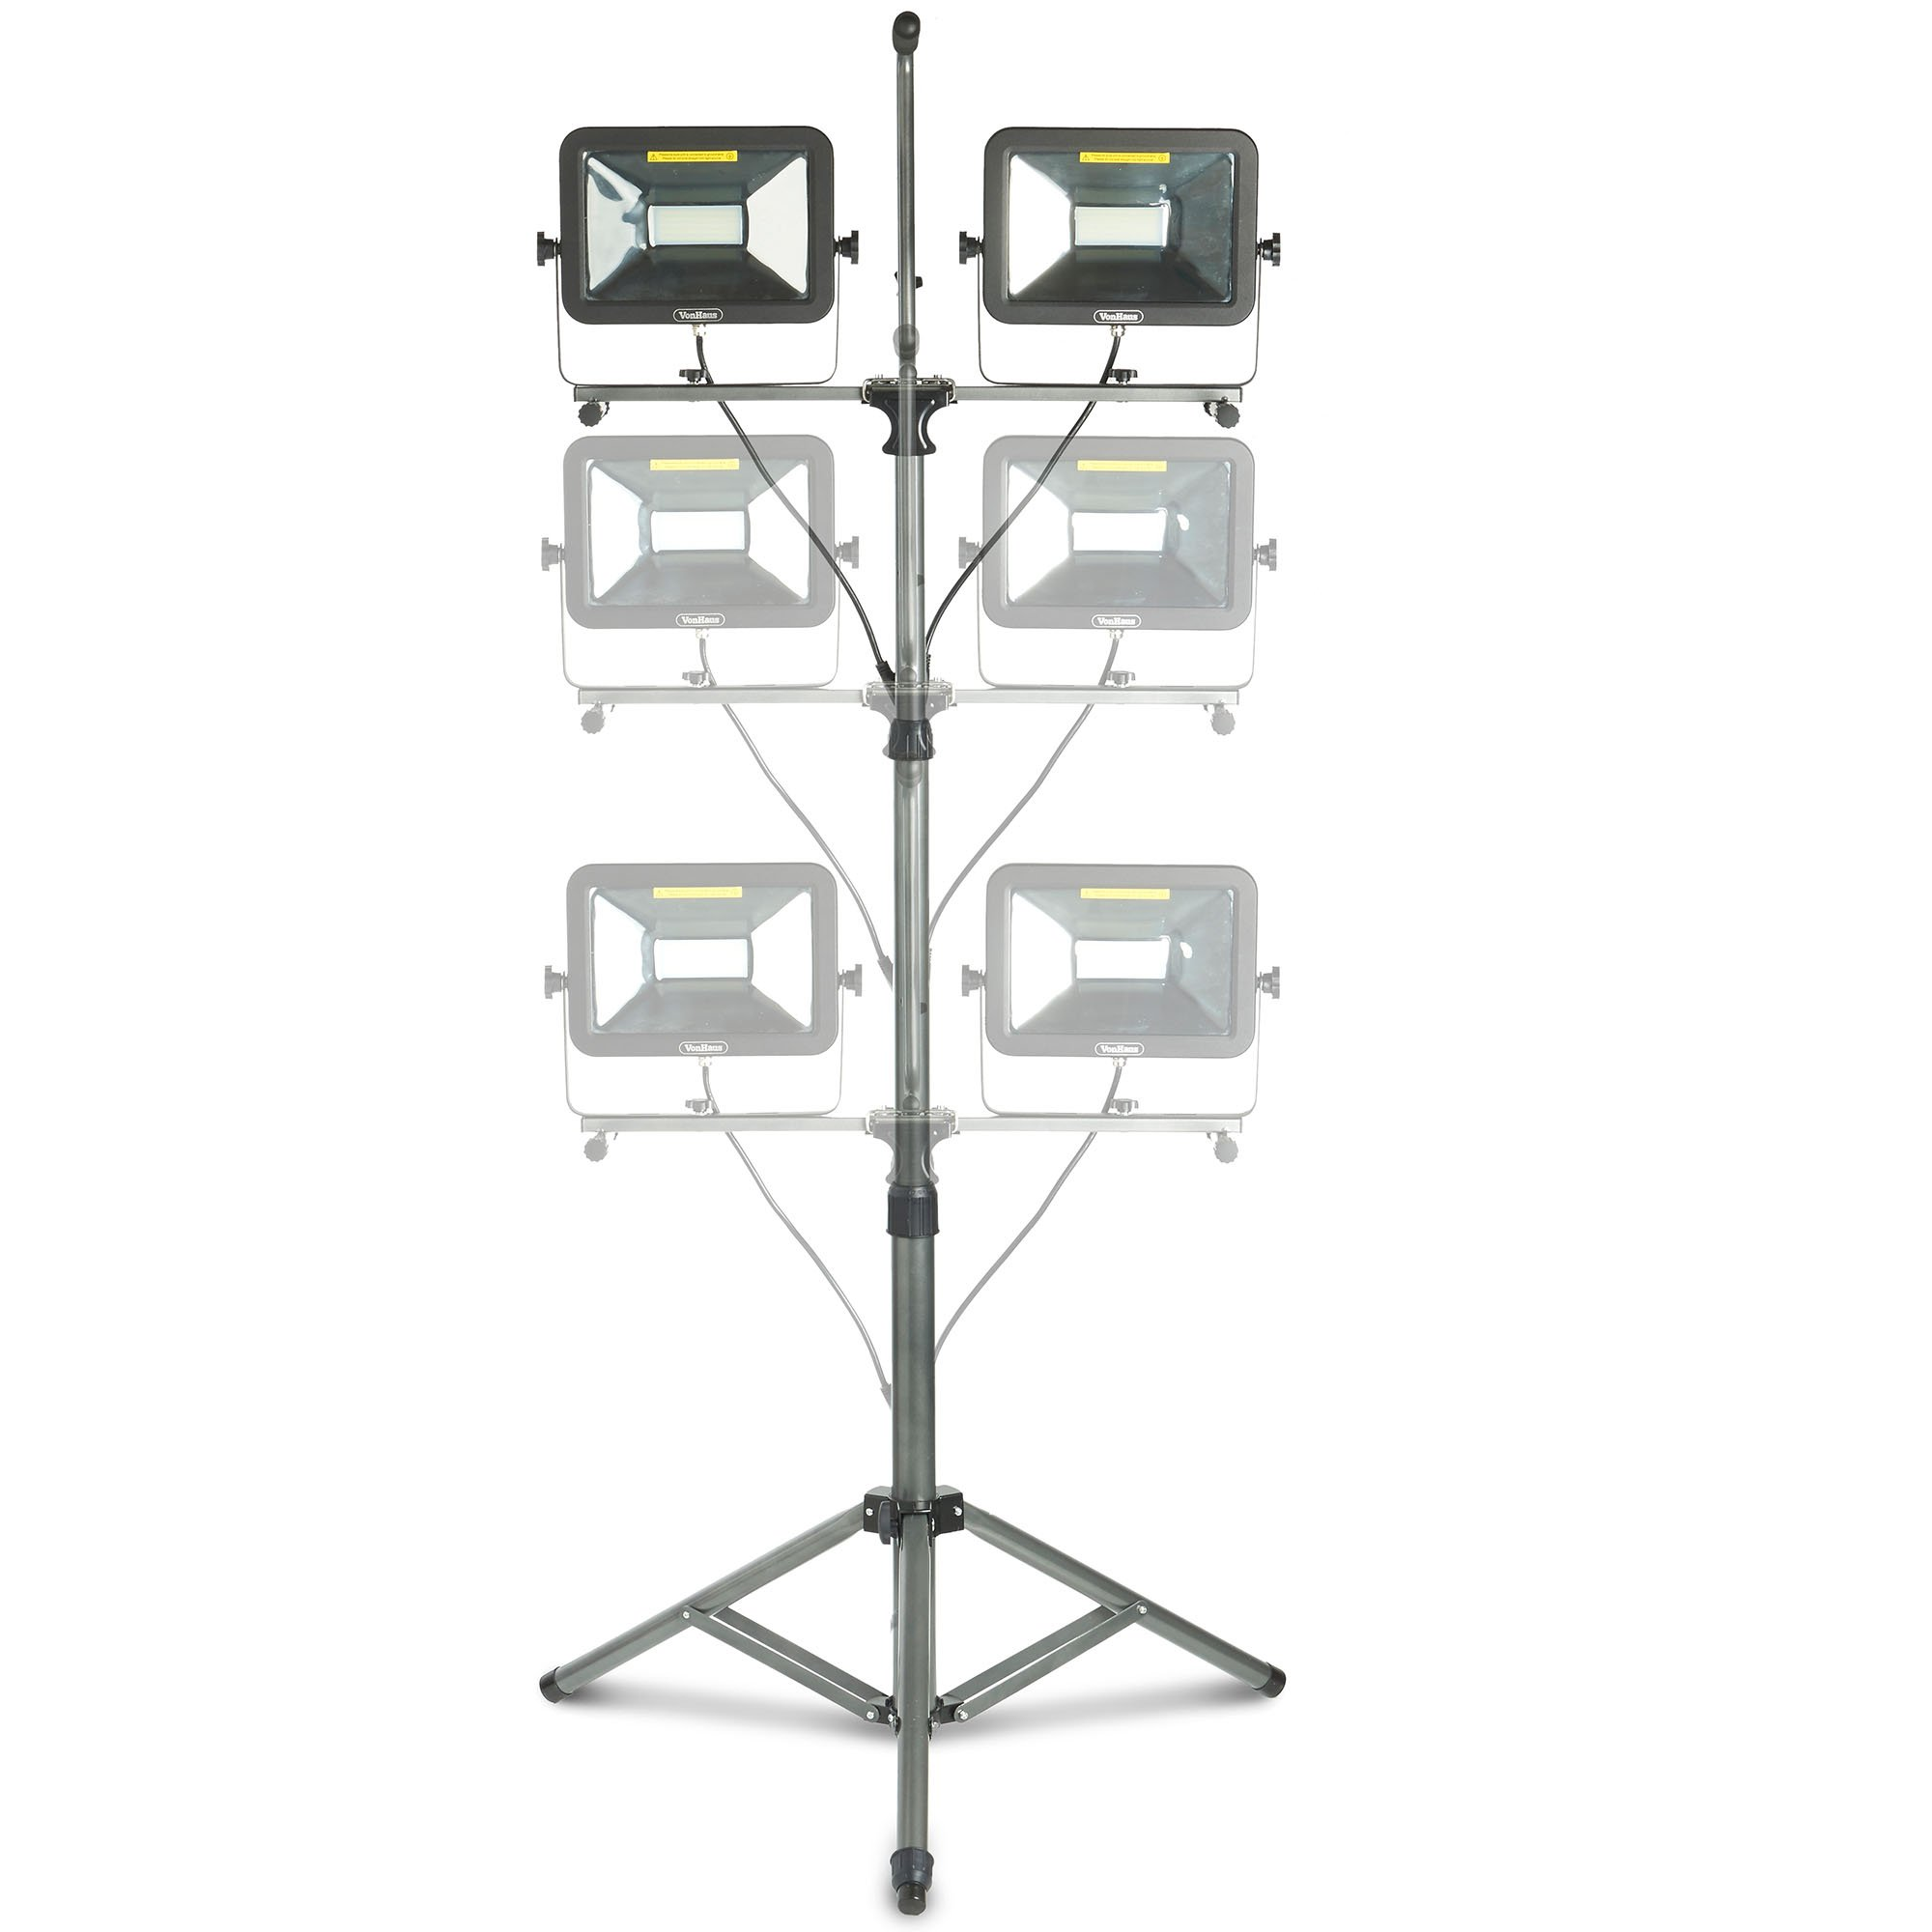 VonHaus Two-Head 10000 Lumen LED Work Light with Detachable Metal Lamp Housing, Metal Telescopic Tripod Stand, Rotating Waterproof Lamps and 8.2Ft Power Cord by VonHaus (Image #3)